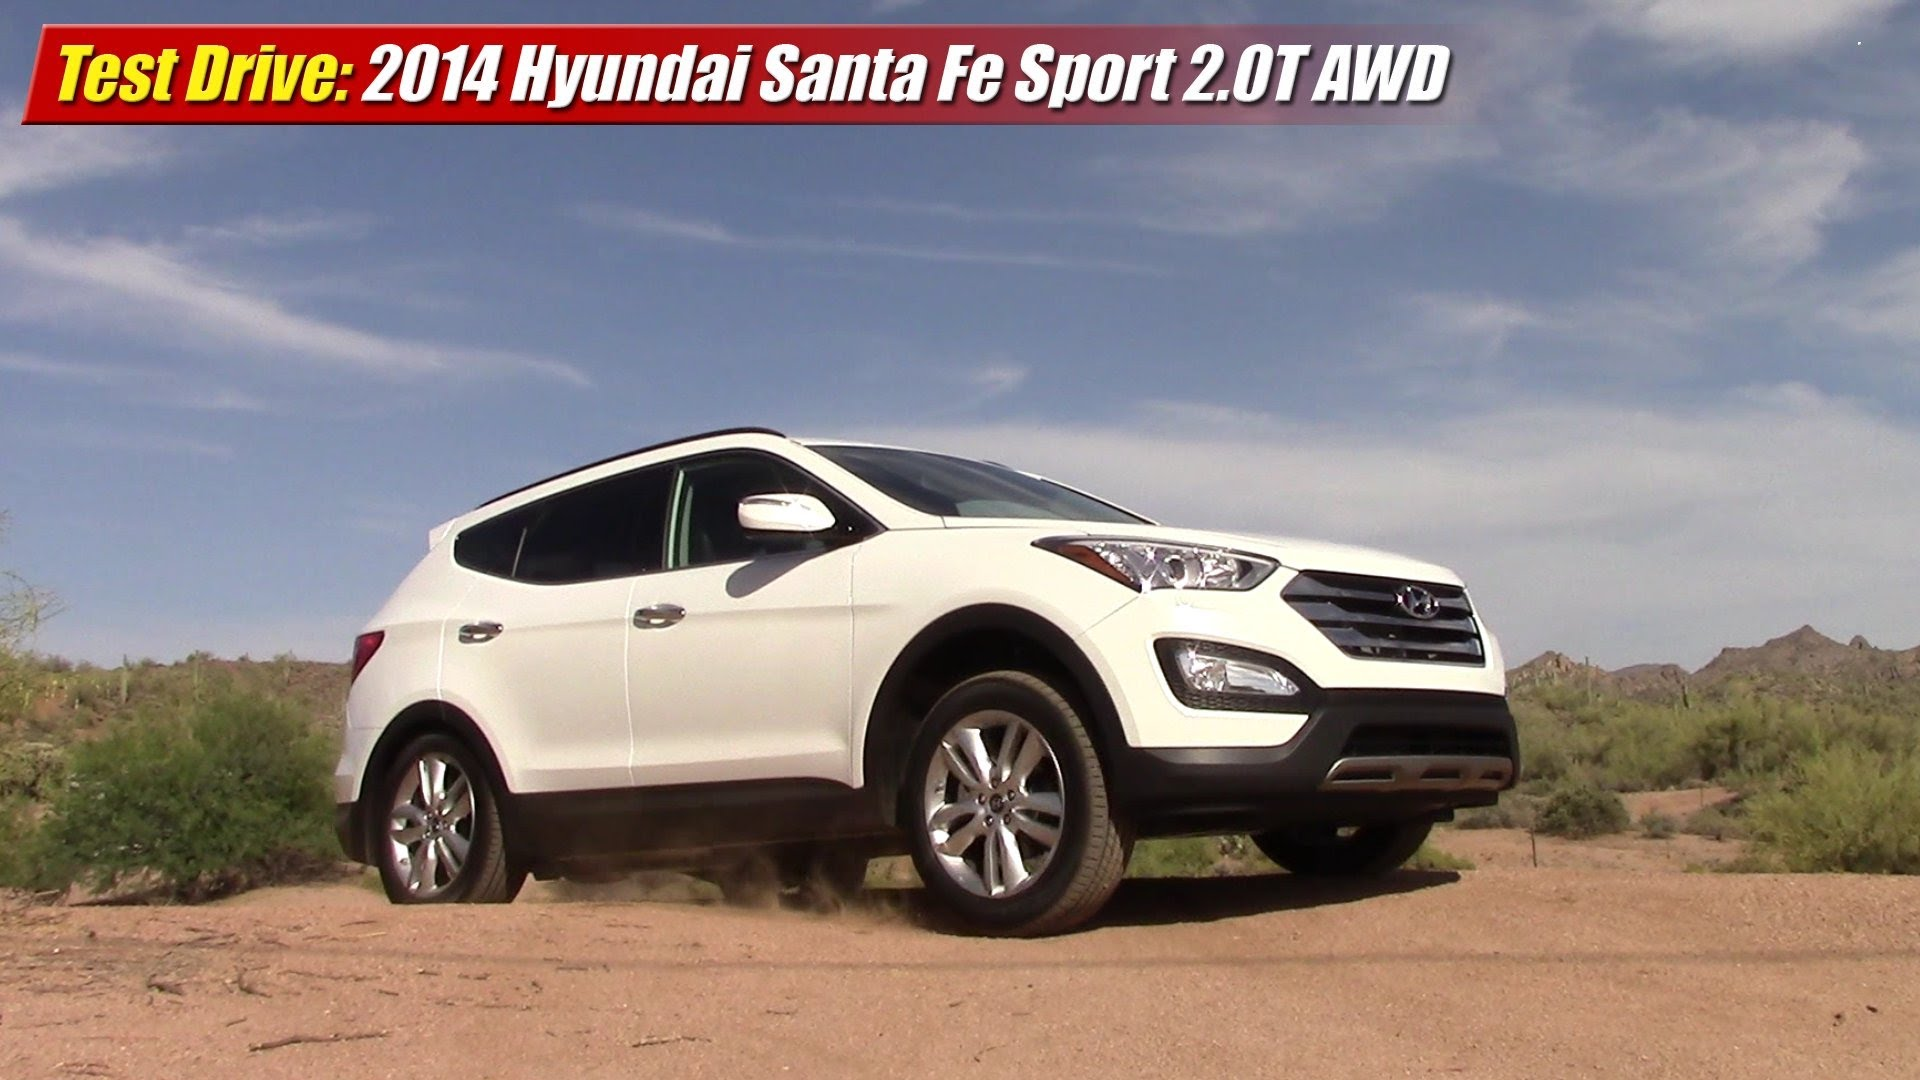 test drive 2014 hyundai santa fe sport 2 0 awd. Black Bedroom Furniture Sets. Home Design Ideas